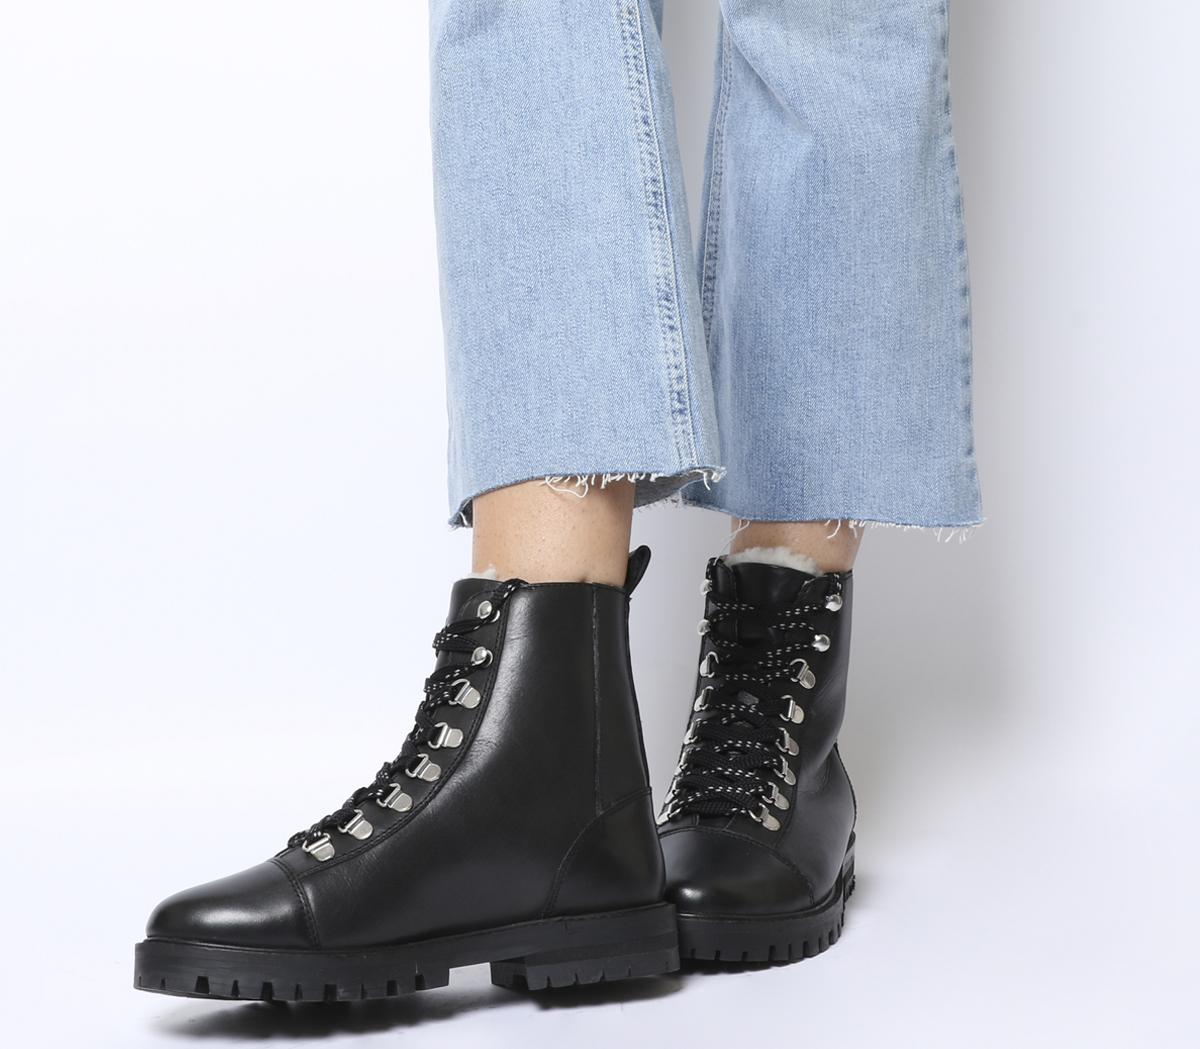 Office Ansel Hiker Lace Up Boots Black